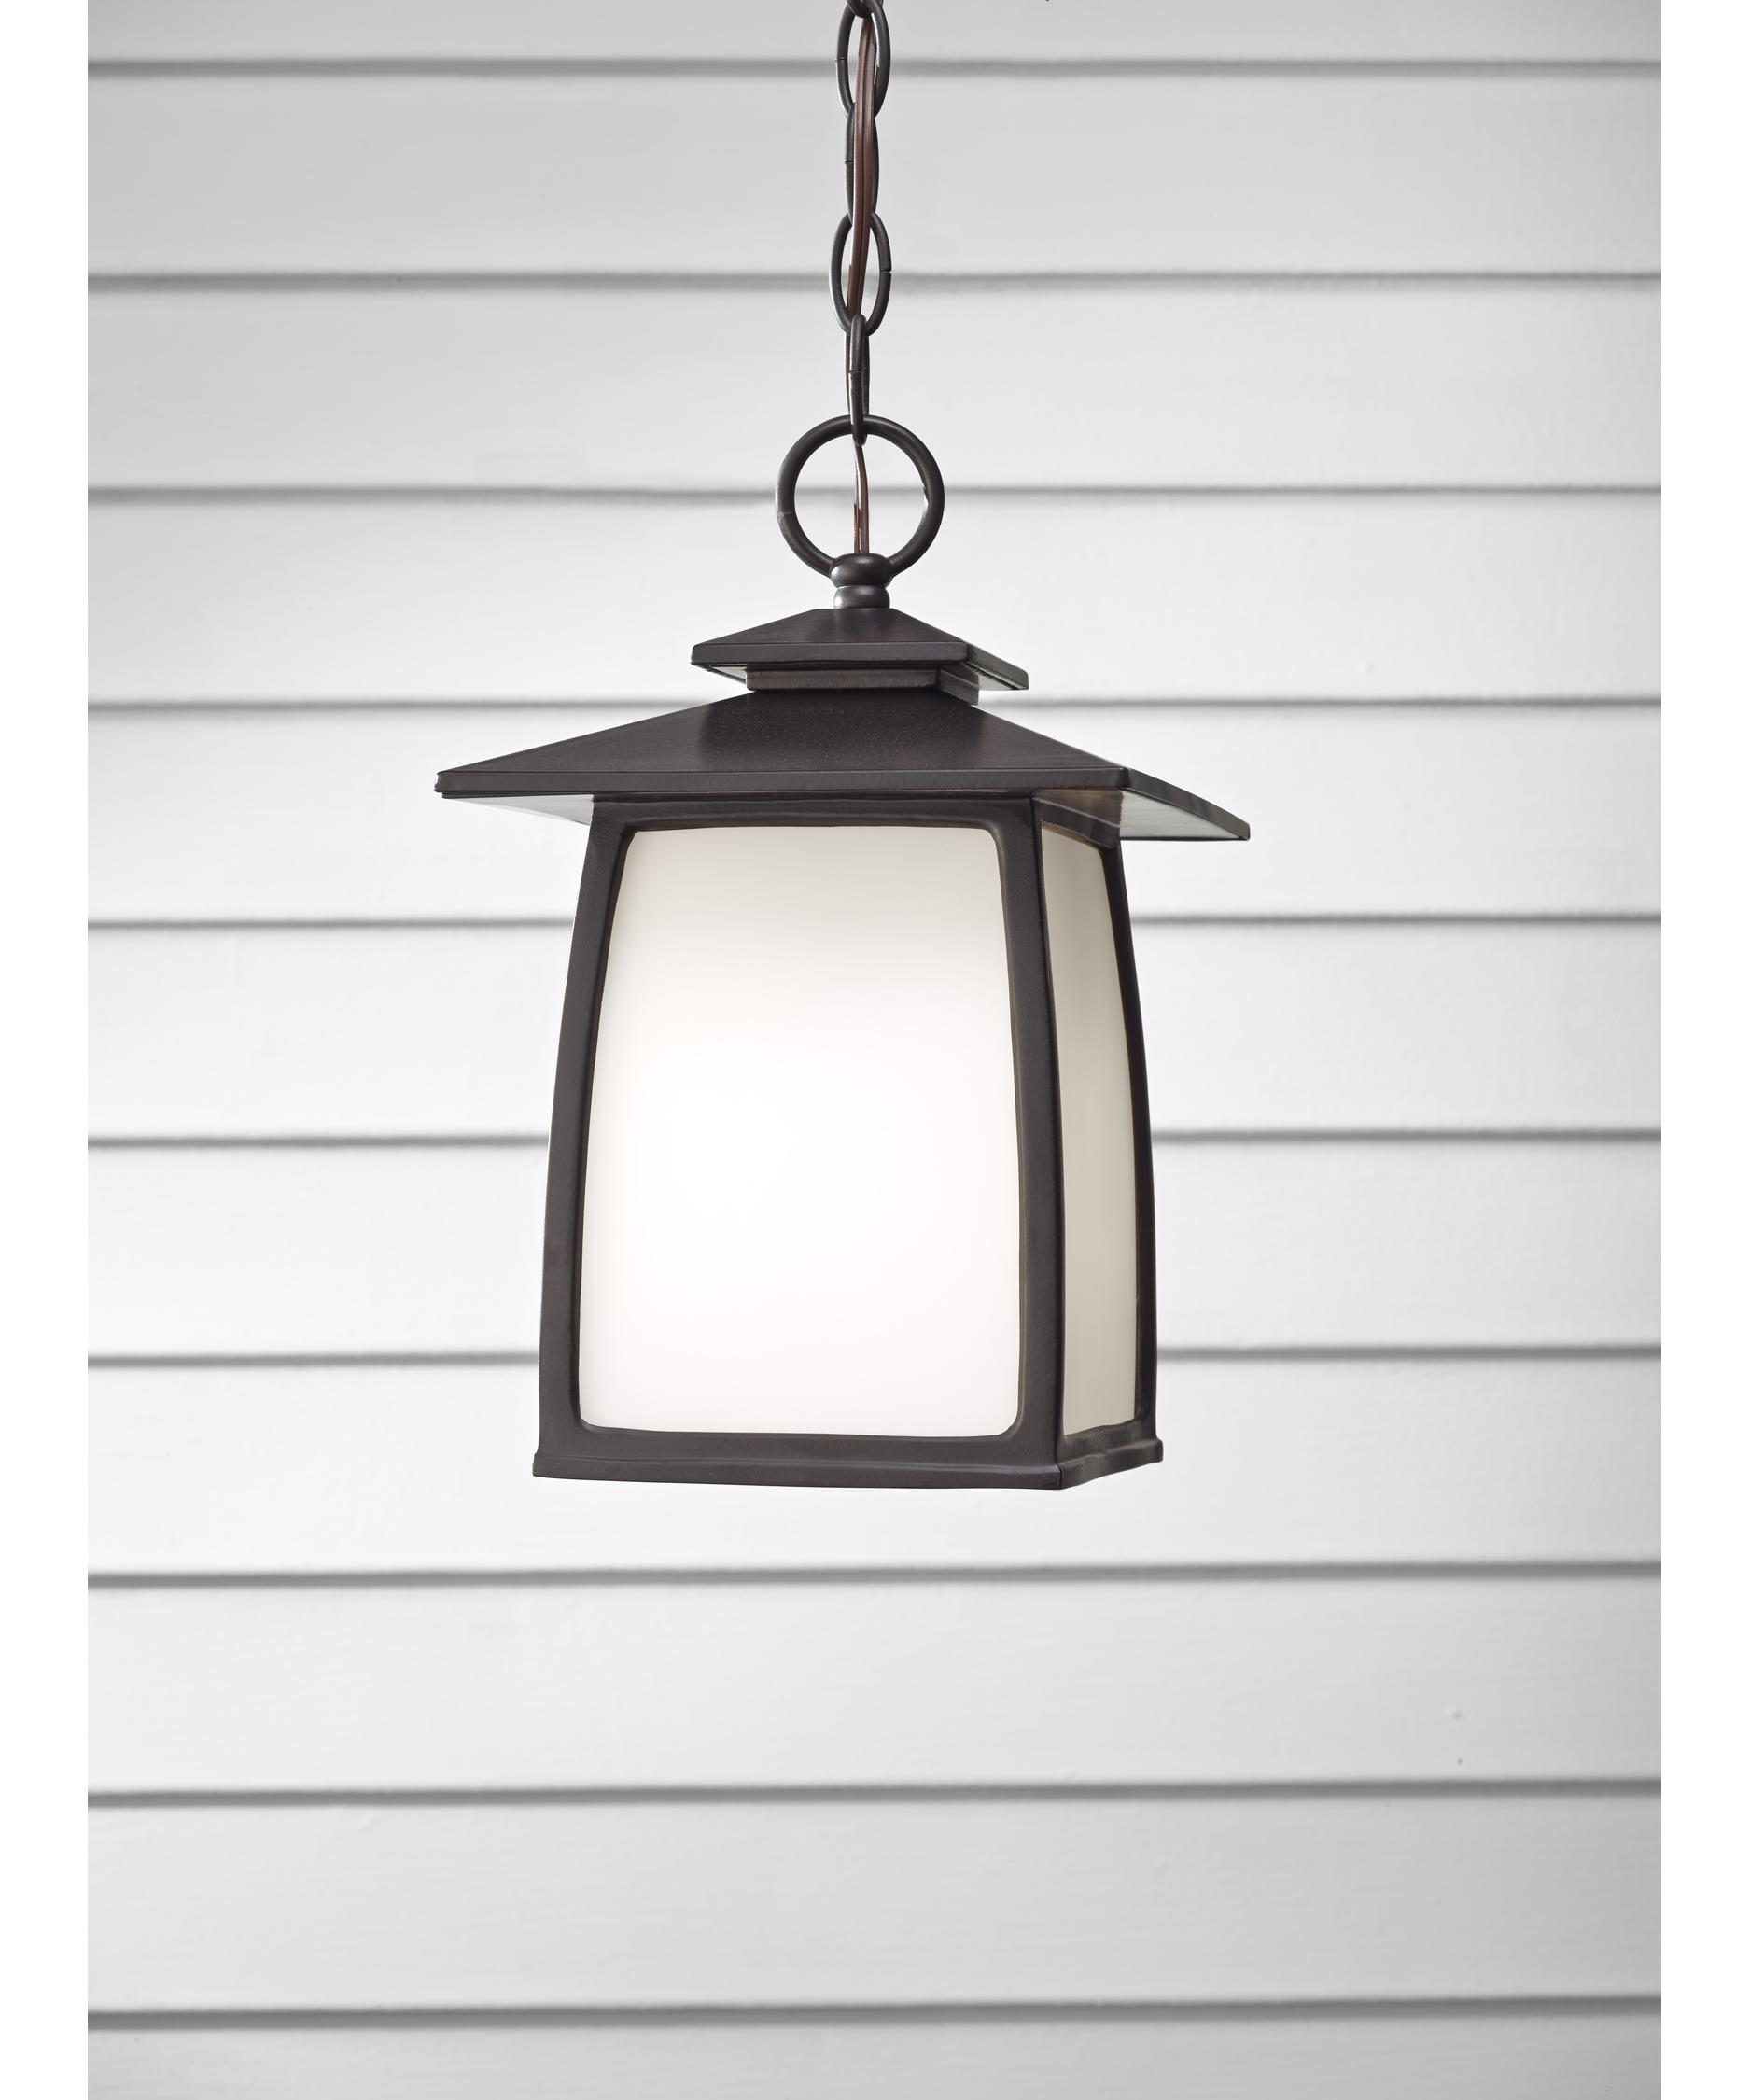 murray feiss ol8511 wright house 8 inch wide 1 light outdoor hanging lantern capitol lighting - Feiss Lighting